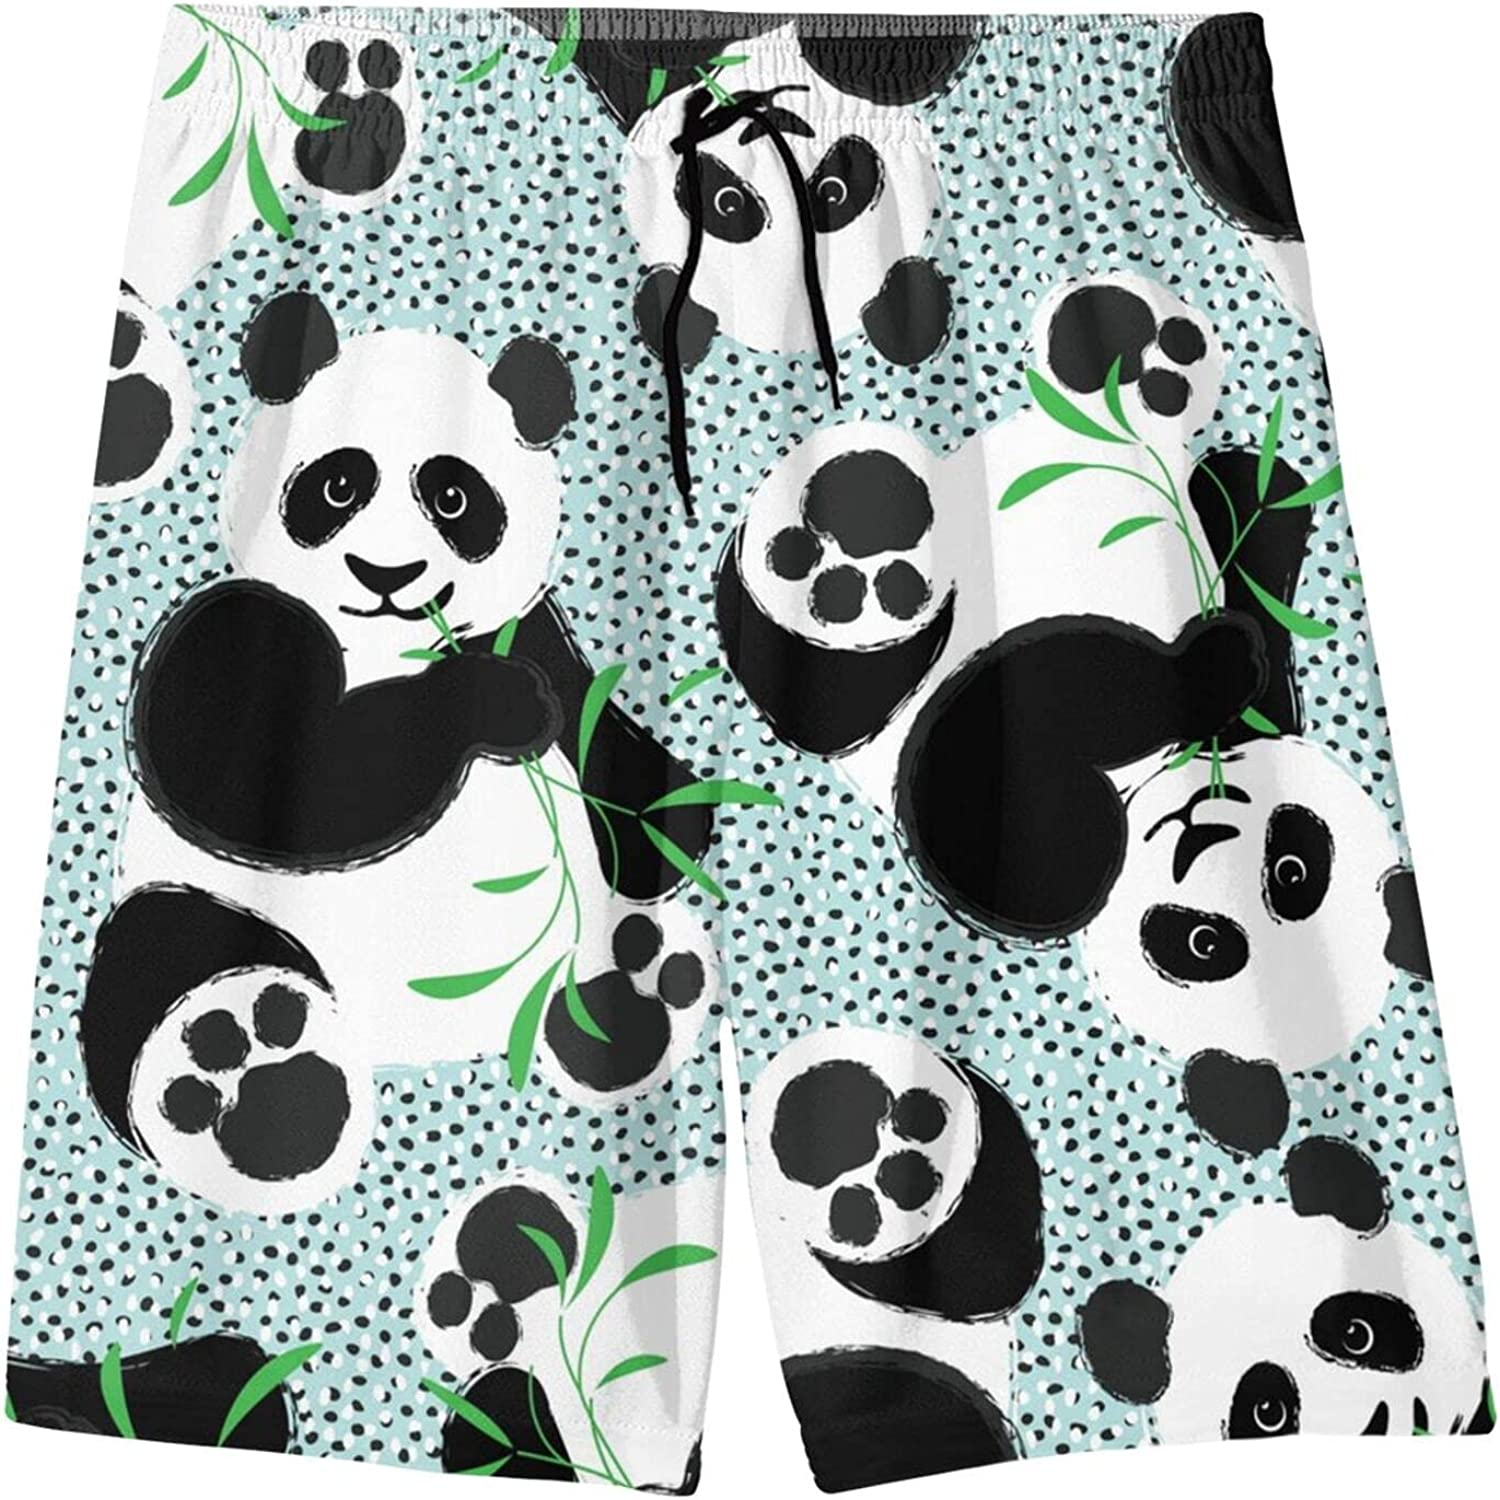 Cute Panda Eating Bamboo Boys Quick Dry Swim Trunks Youth Novelty Beach Surfing Board Shorts 7-20 Years